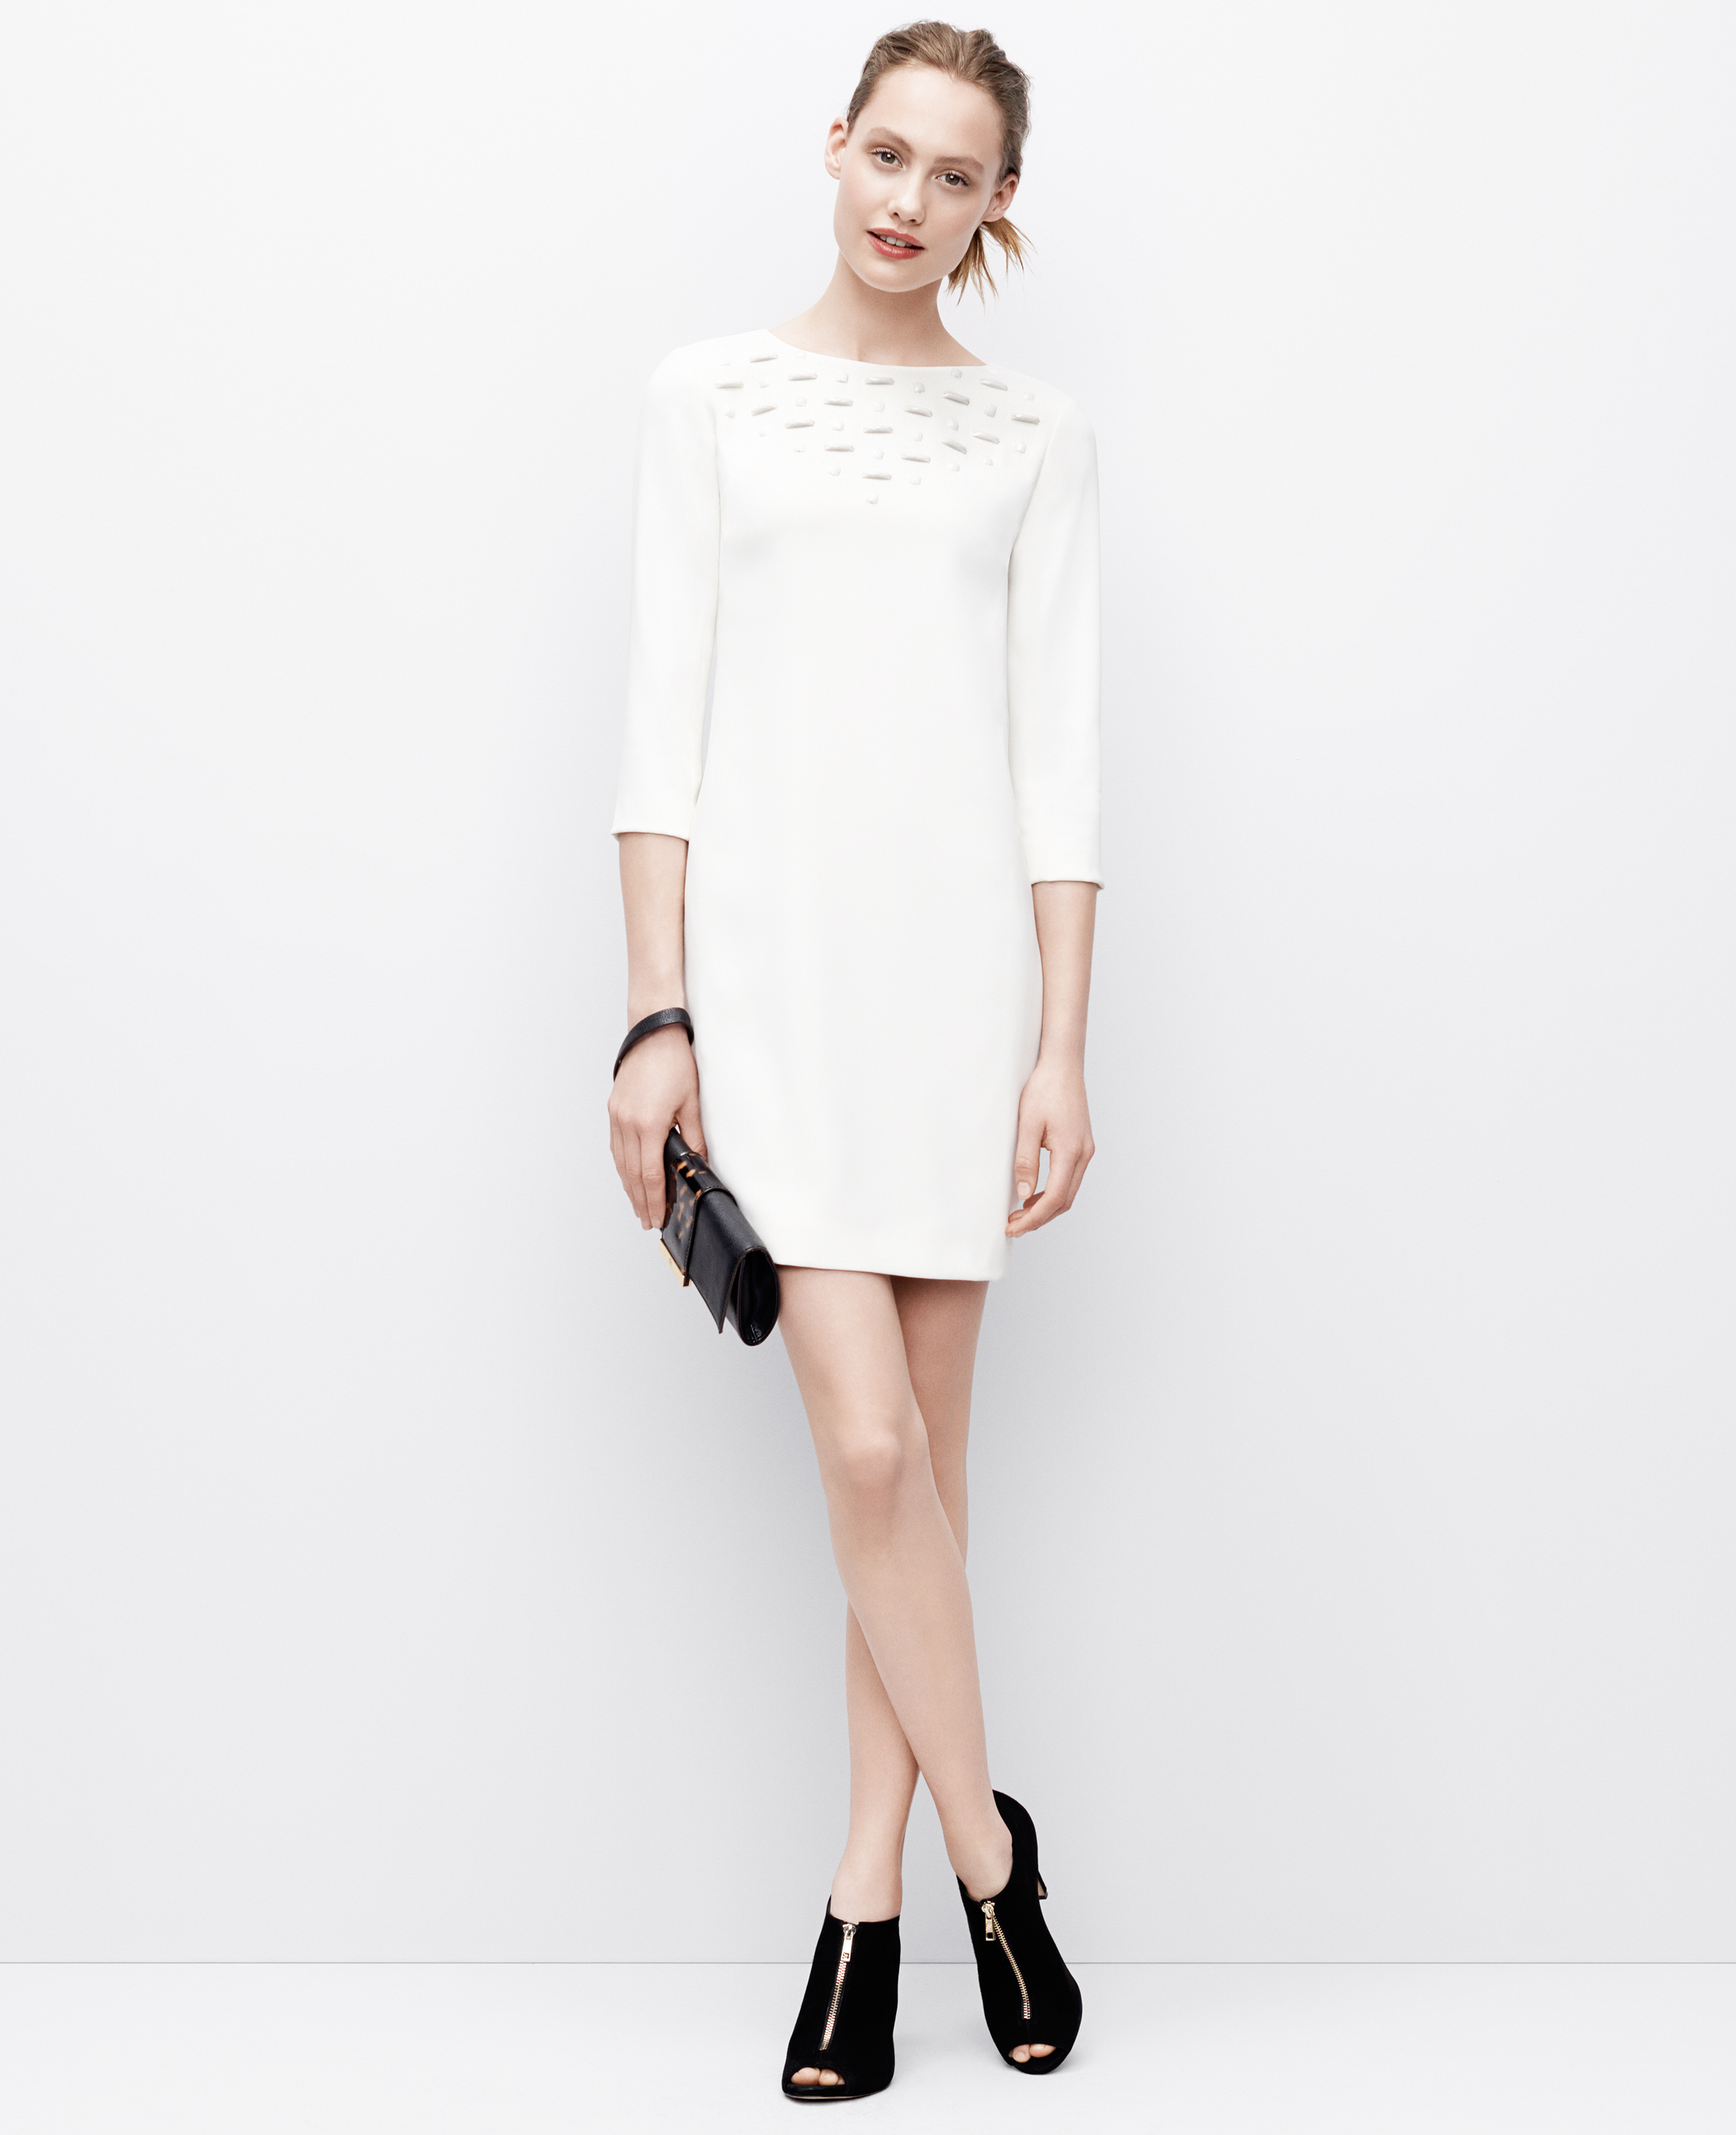 c6b65e67a2 Ann Taylor Petite Embellished Stone Dress in White - Lyst